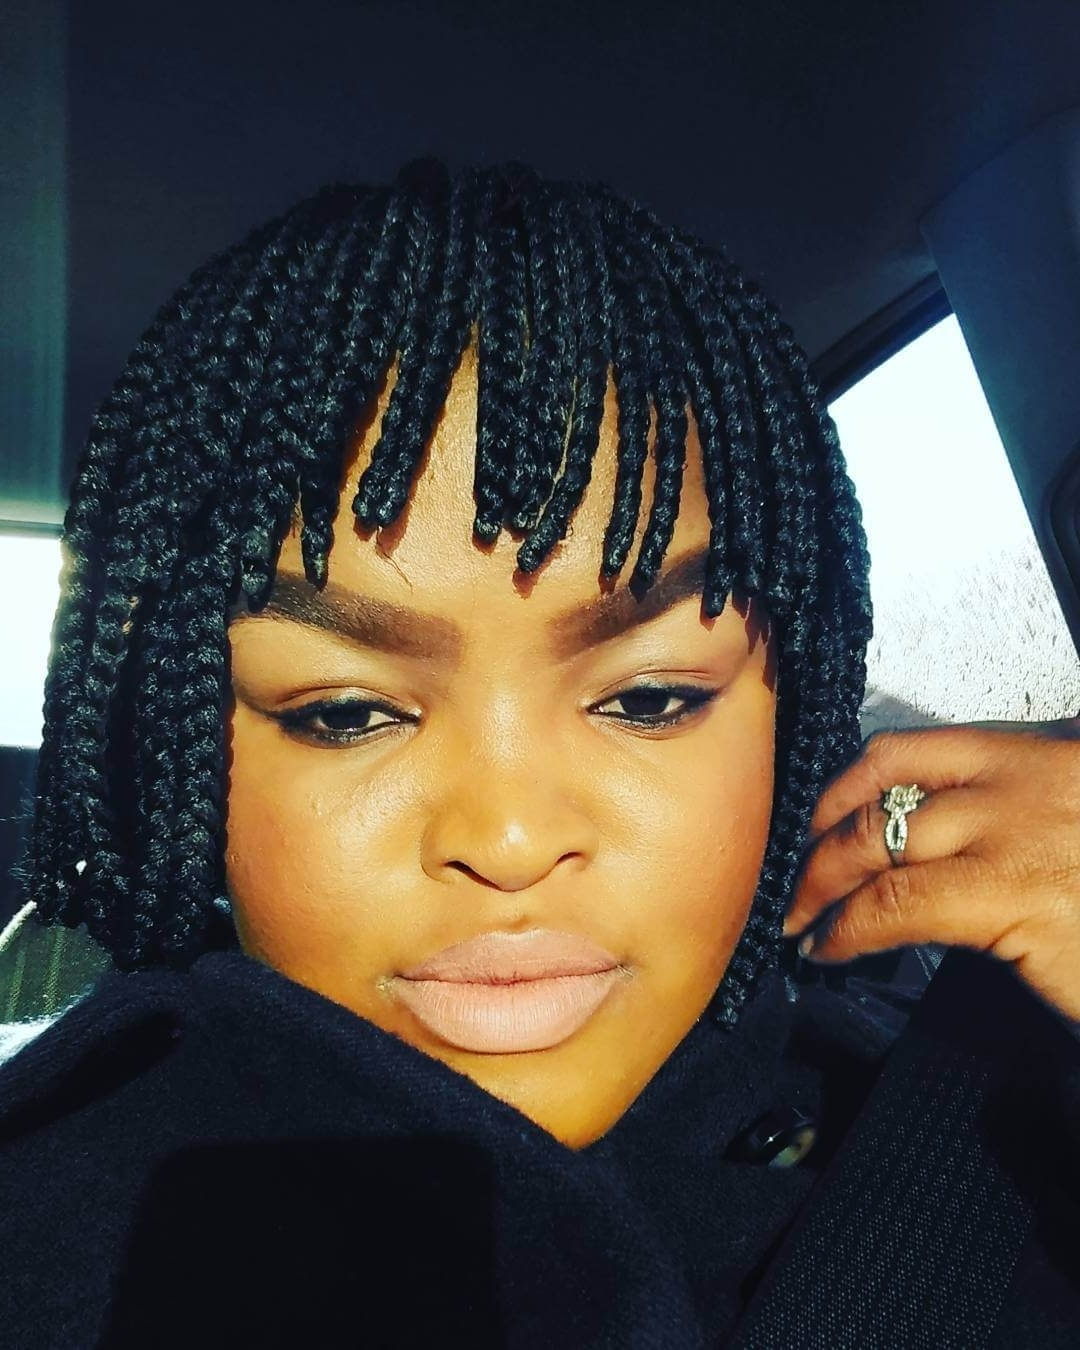 These 11 Cute Photos Of Braids With Bangs Will Convince You To Try Regarding Current Cornrows Hairstyles With Bangs (View 14 of 15)